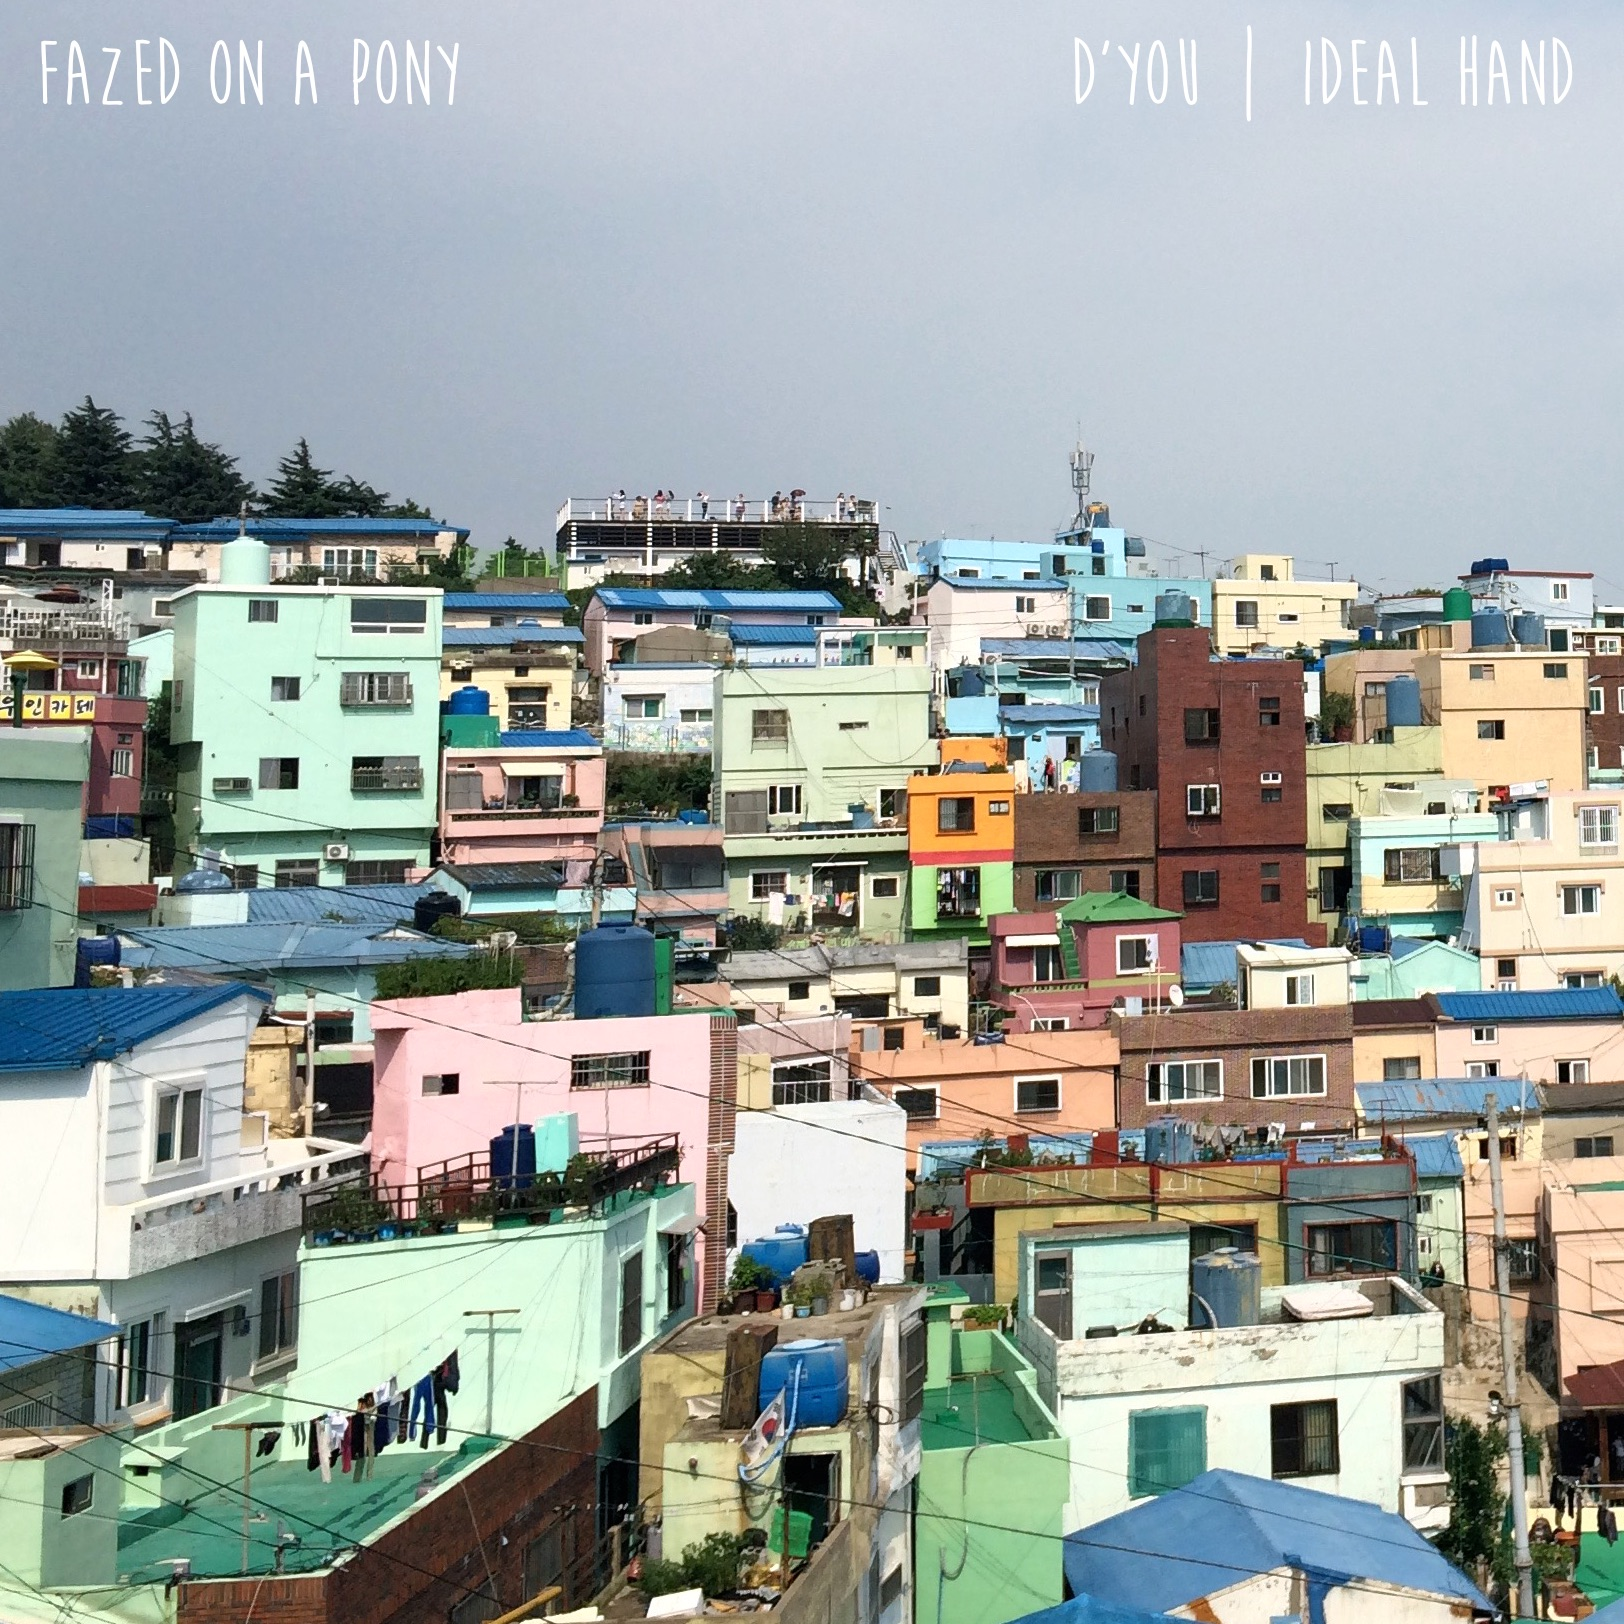 Fazed on a pony single artwork